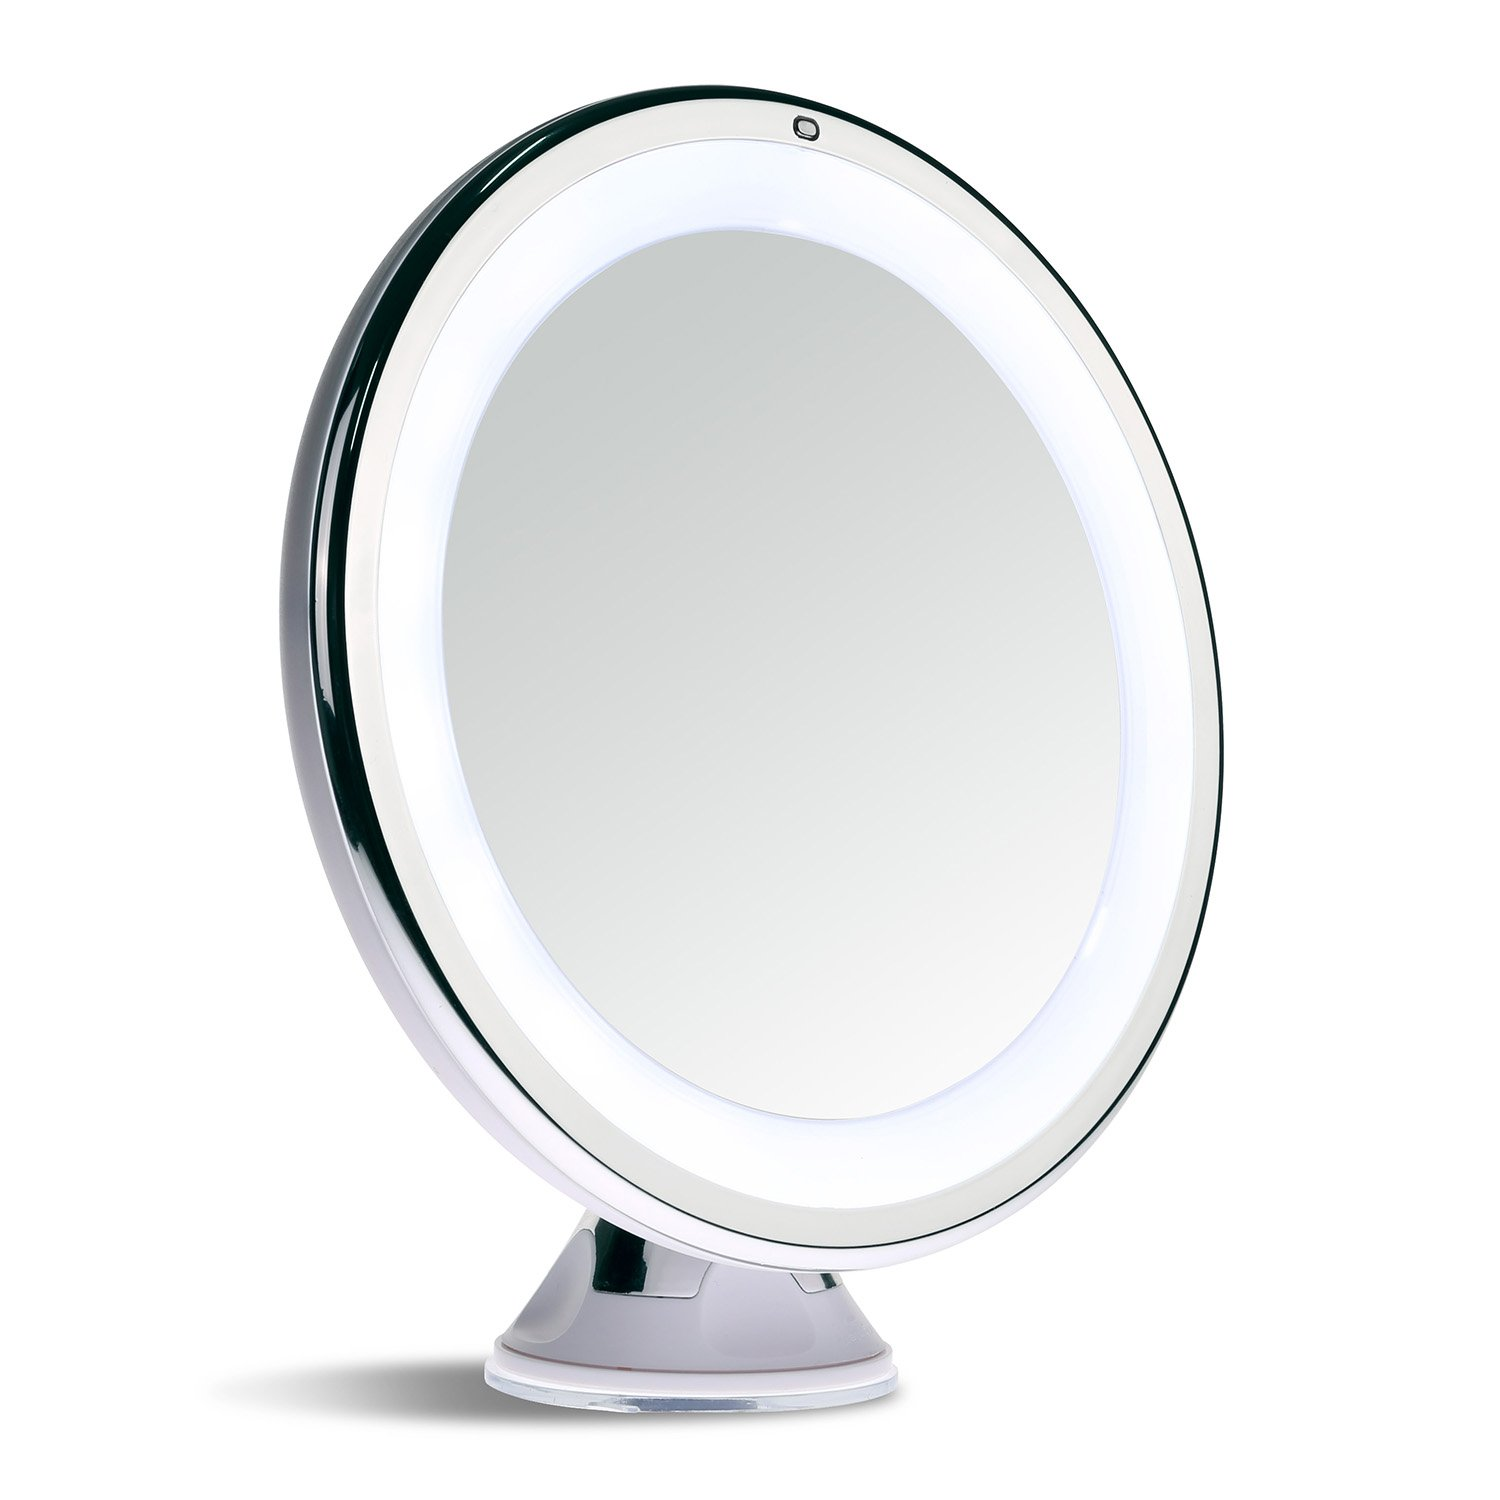 Best lighted makeup mirrors december 2017 top picks for Beauty mirror